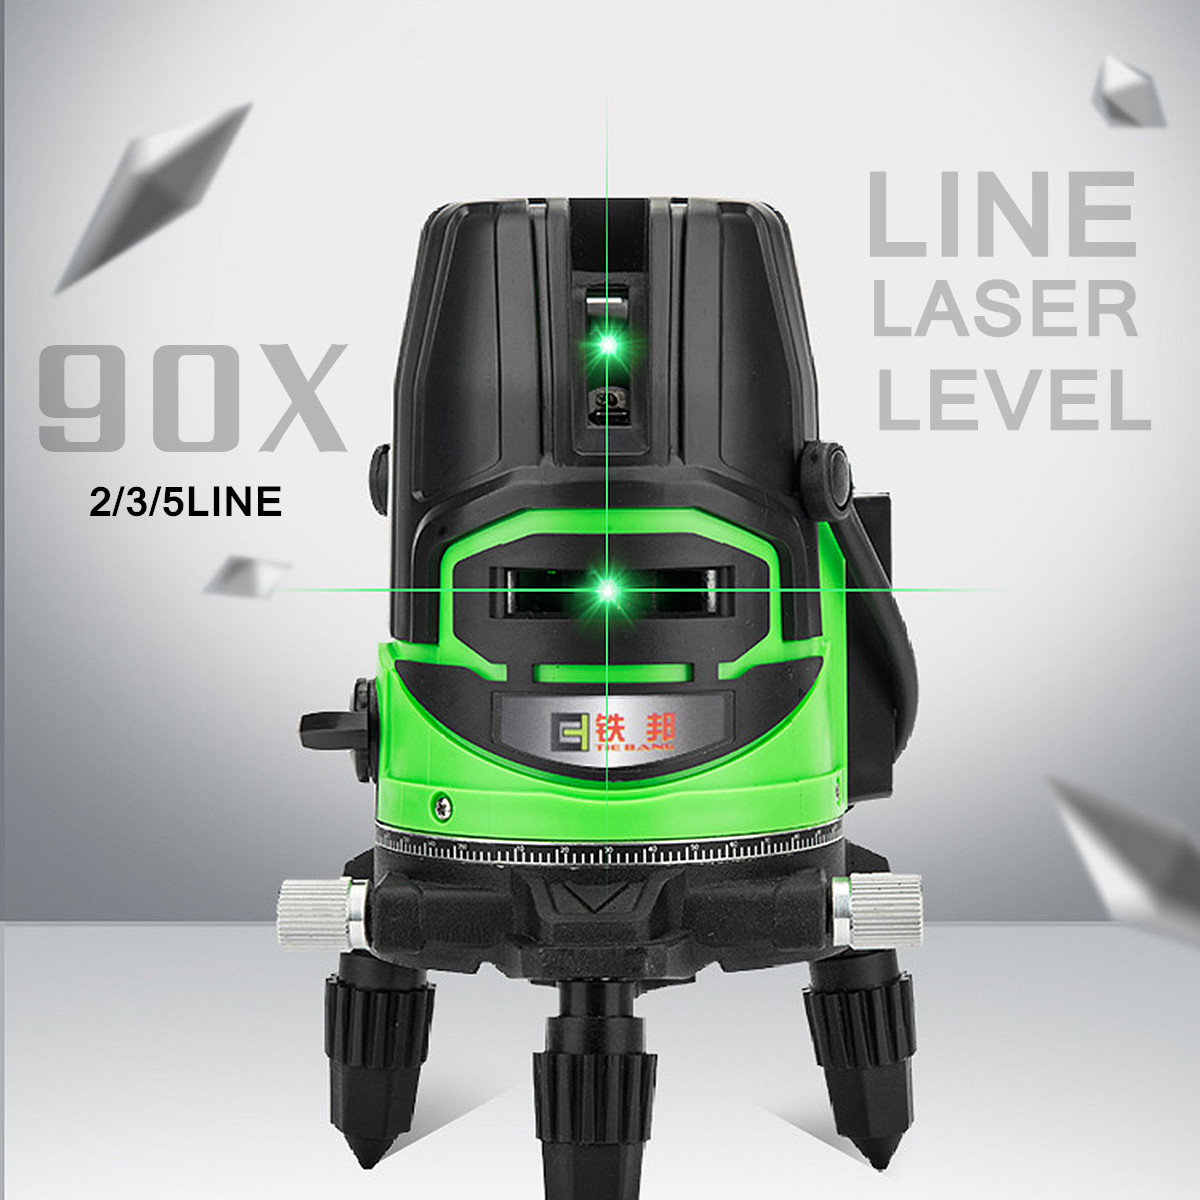 2/3/5 Line Four-button Screen Green Light Line Laser Level Automatic Self Leveling Mechanism Thickened Metal Base Shatter-proof gzeele new uk backlit keyboard for msi gs43 gs40 gs43vr keyboard white backlight without frame